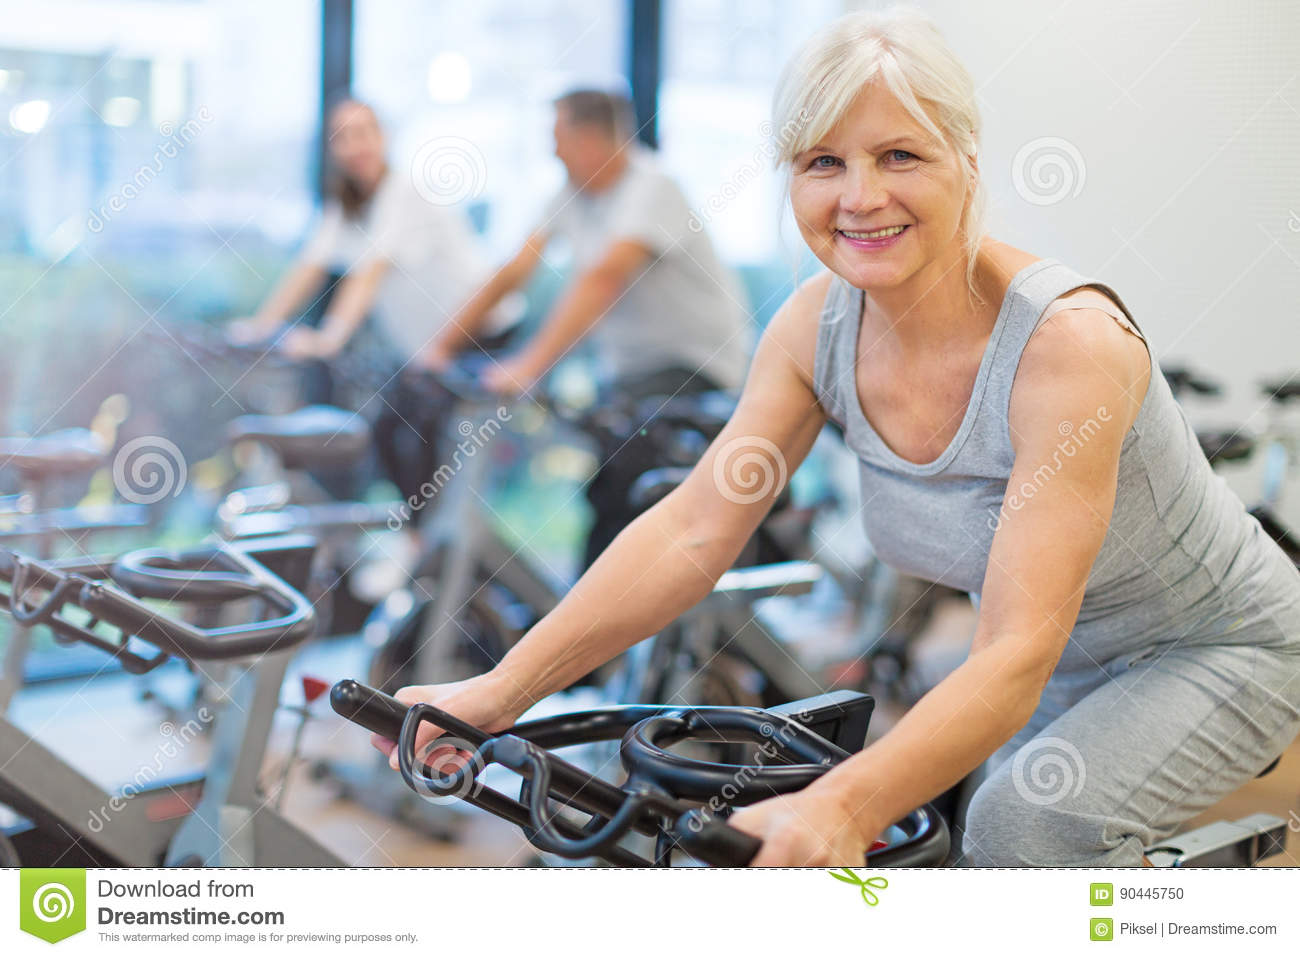 Seniors on exercise bikes in spinning class at gym